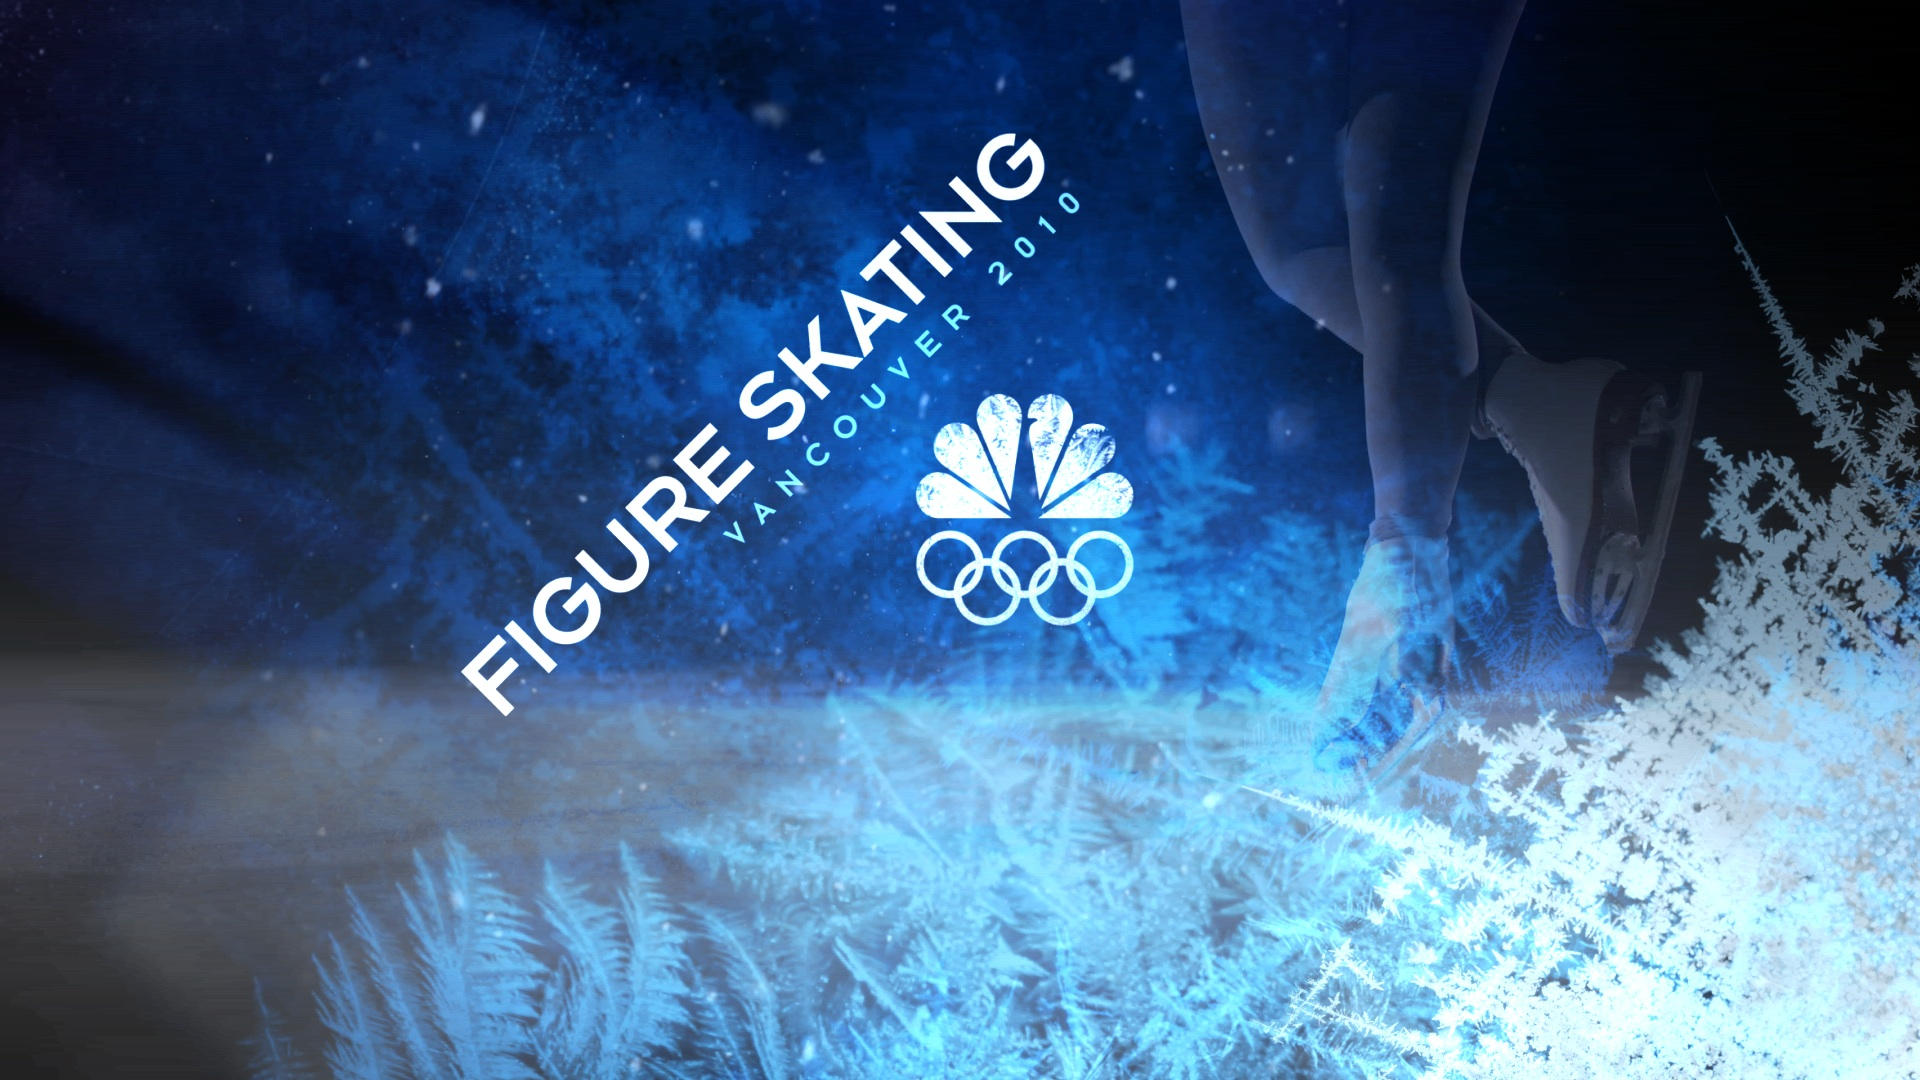 motion graphic design   Vancouver 2010 Olympics